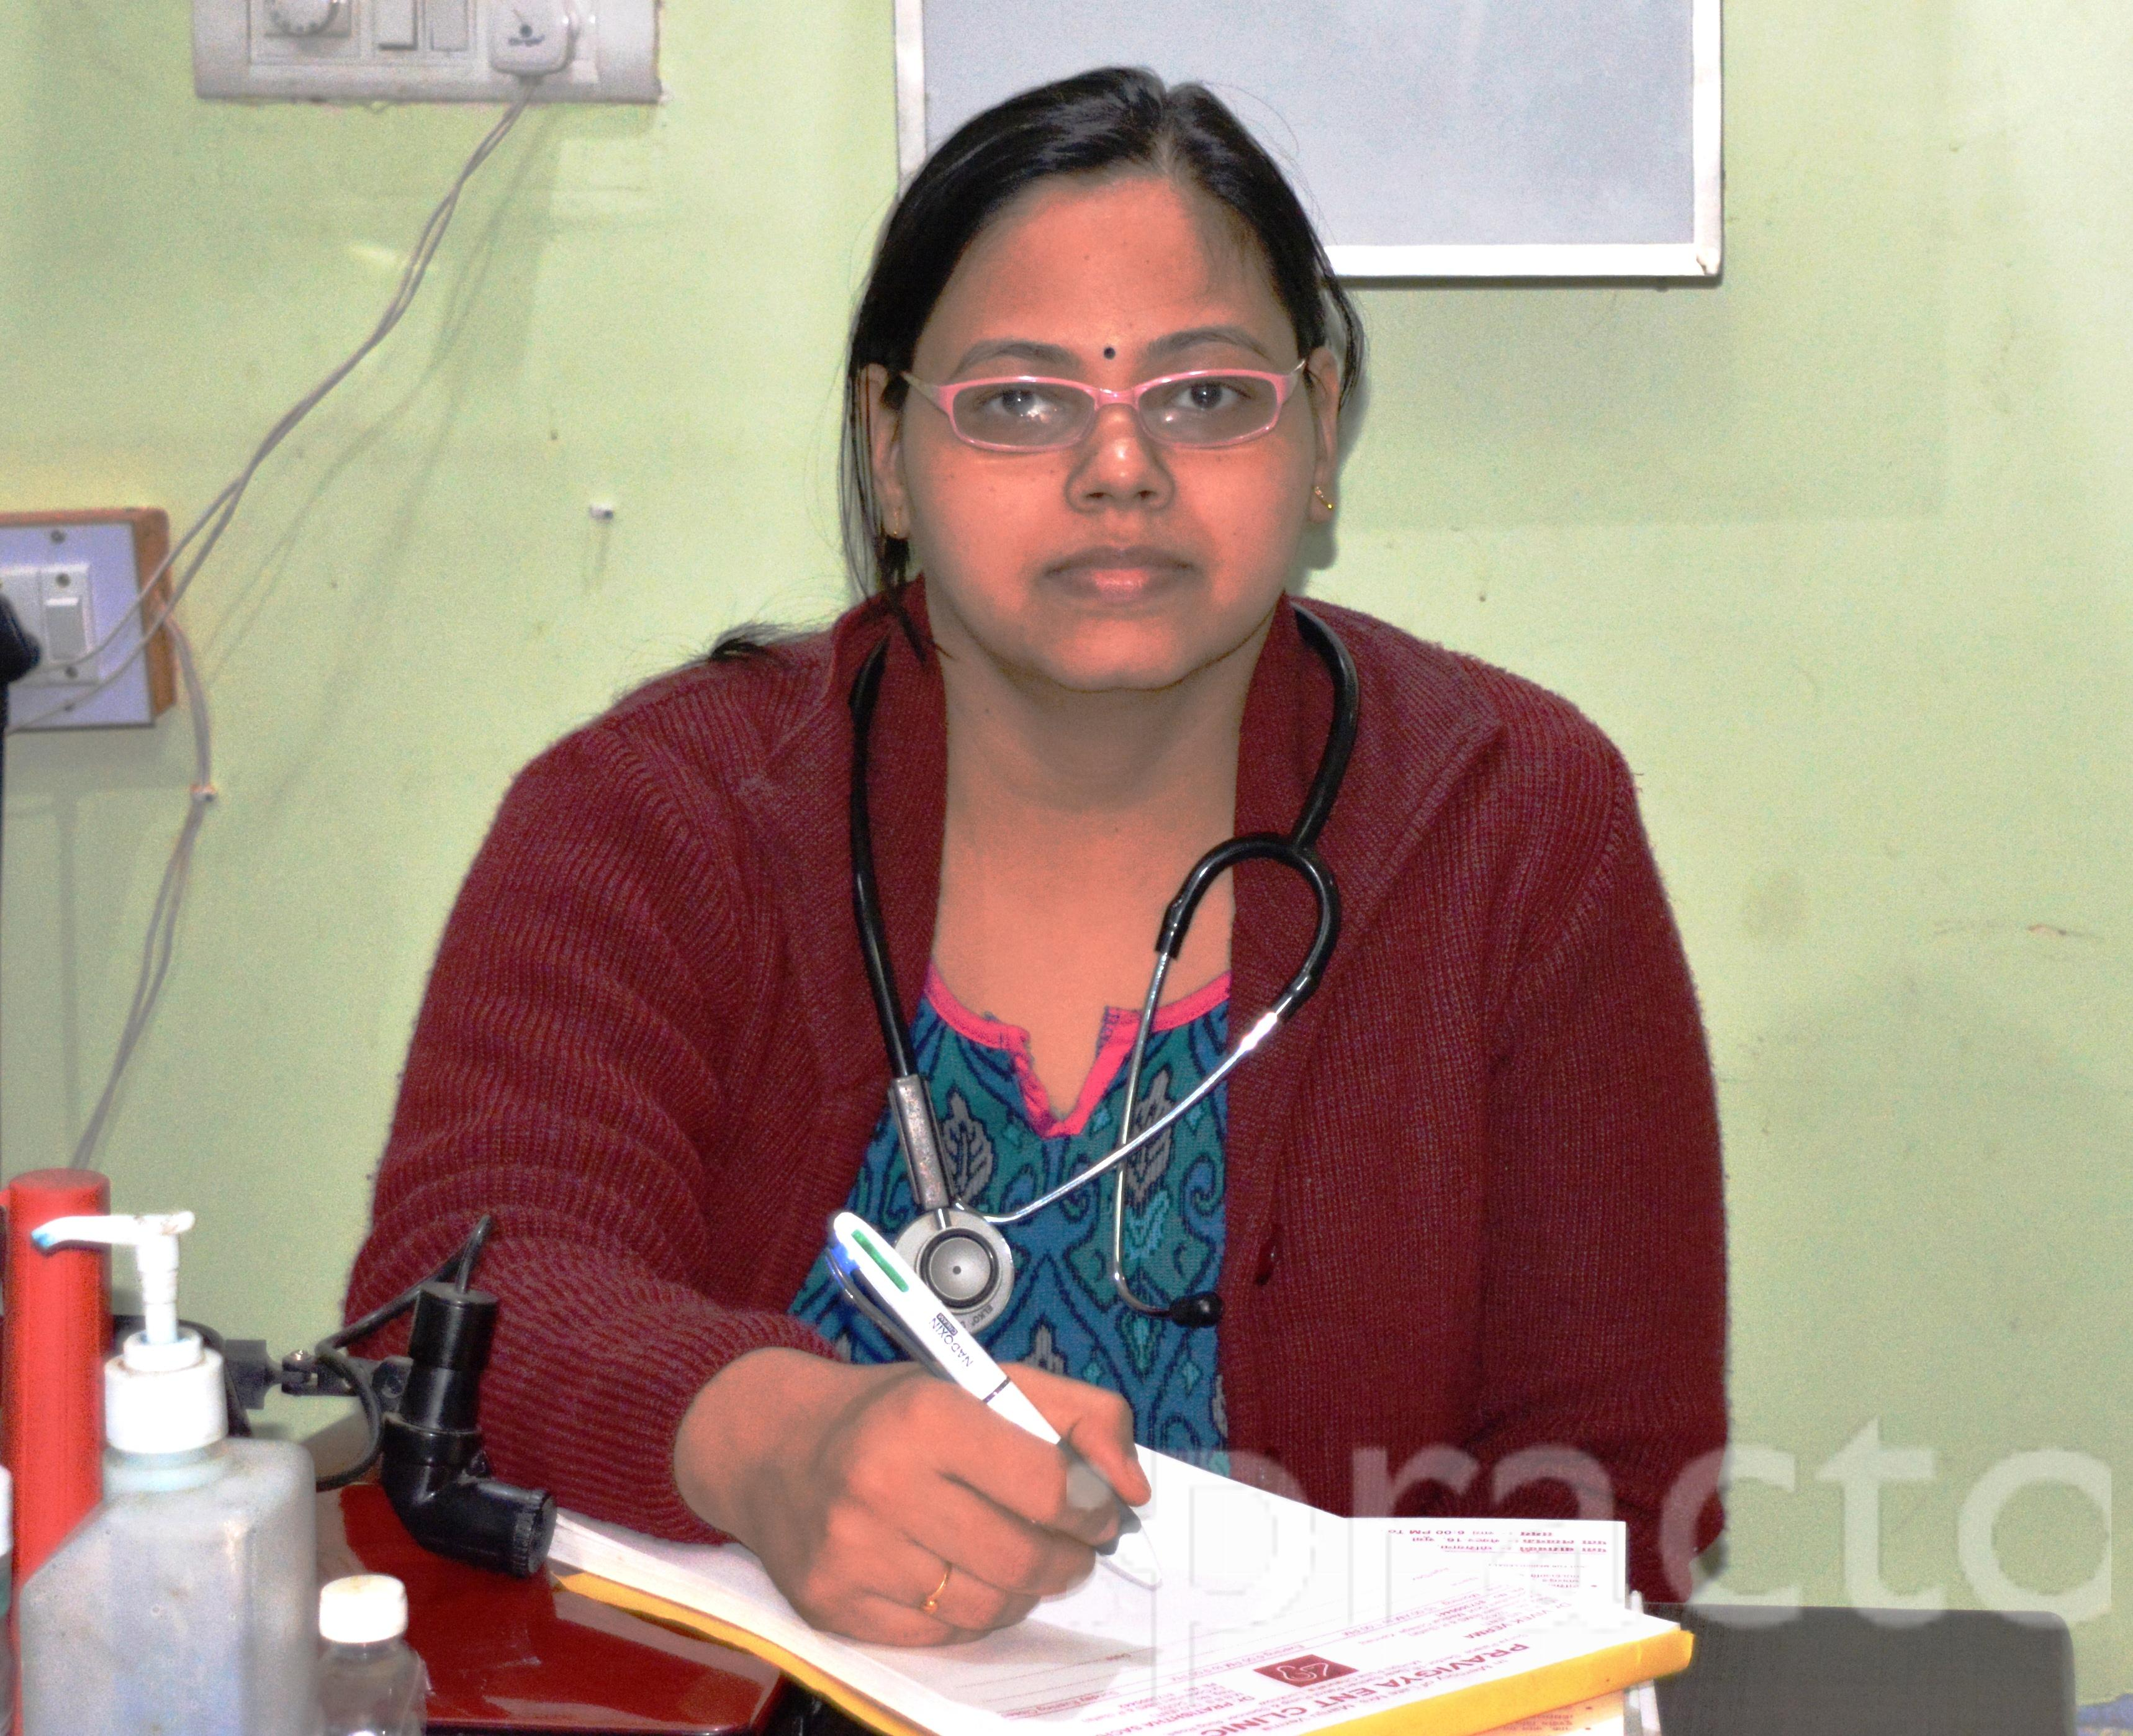 Dr. P. Sachan Verma - Ear-Nose-Throat (ENT) Specialist